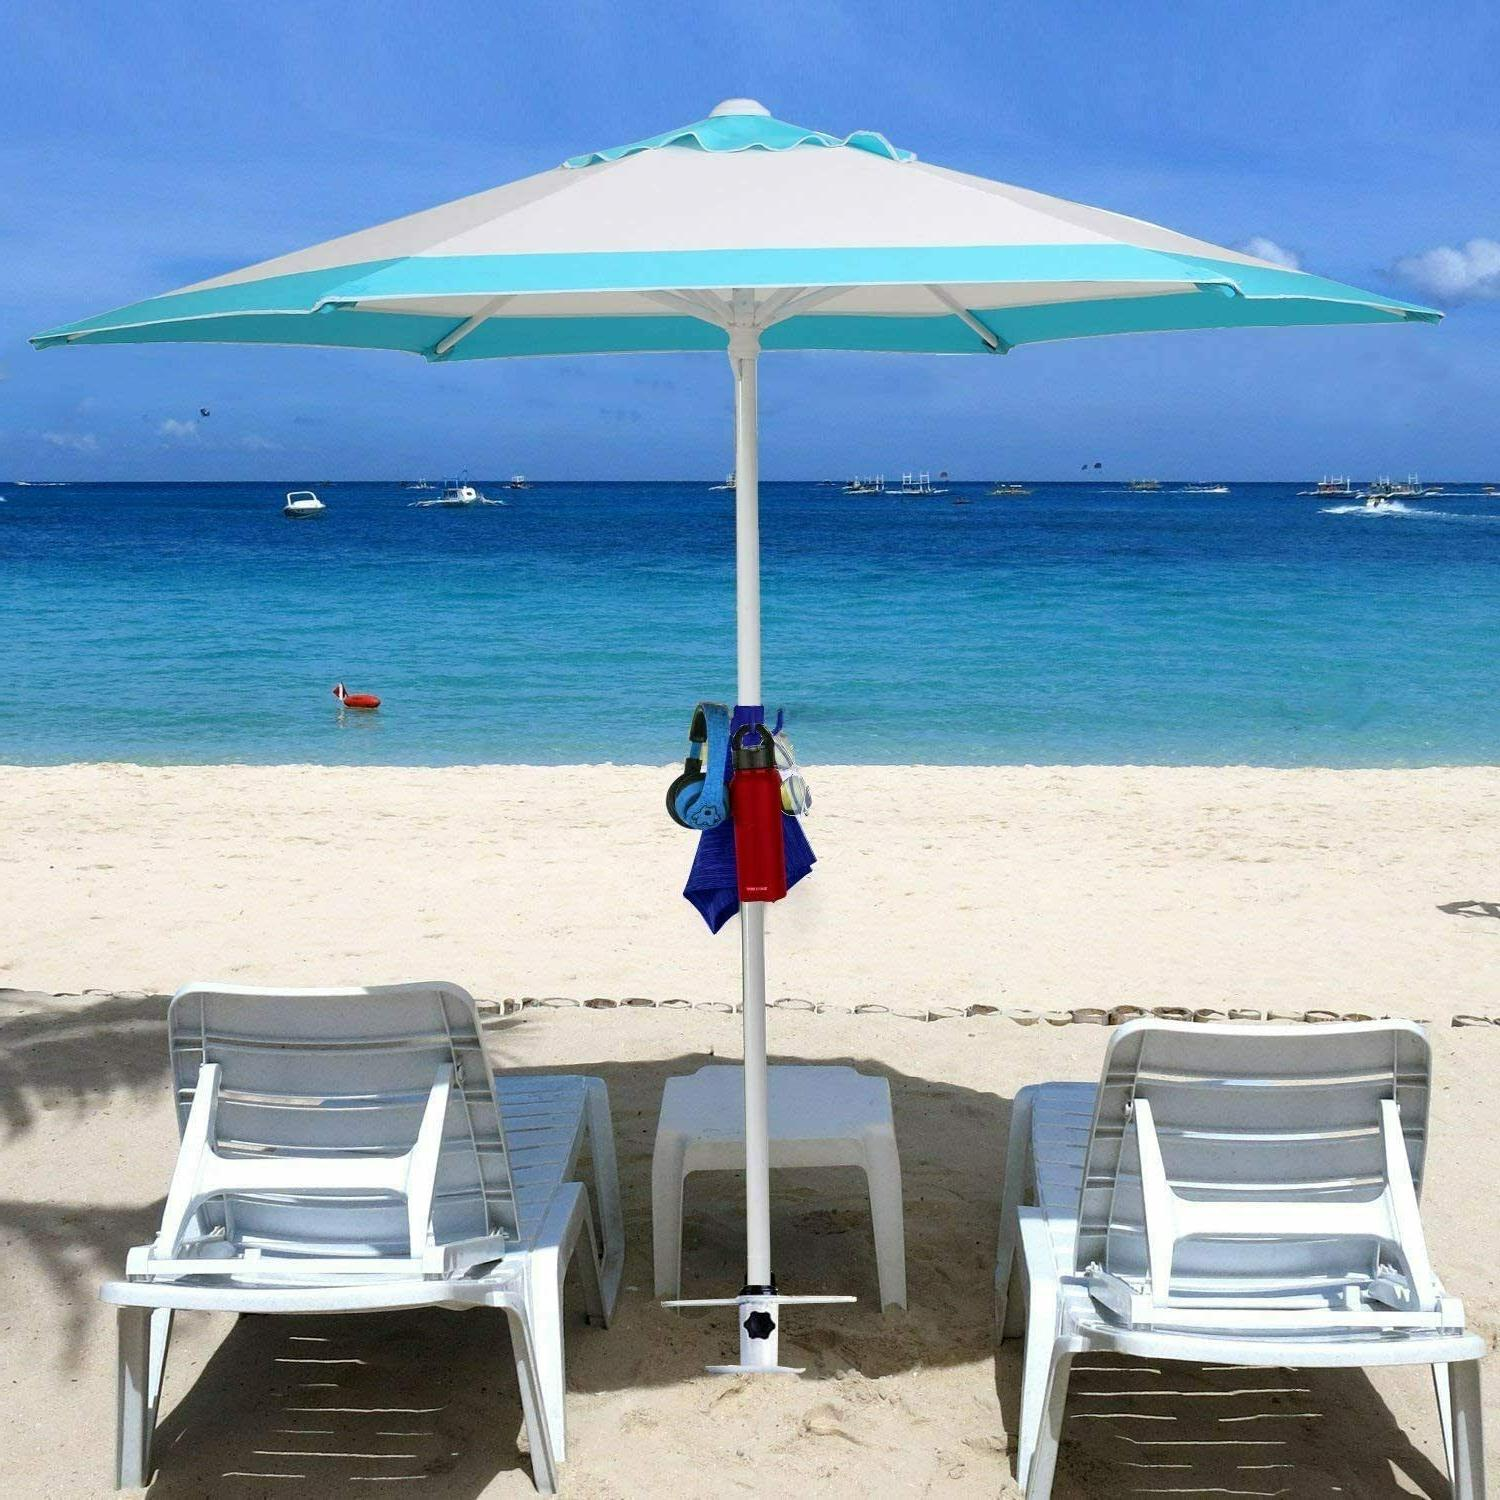 AMMSUN Umbrella Sand Duty Metal Beach Umbrella